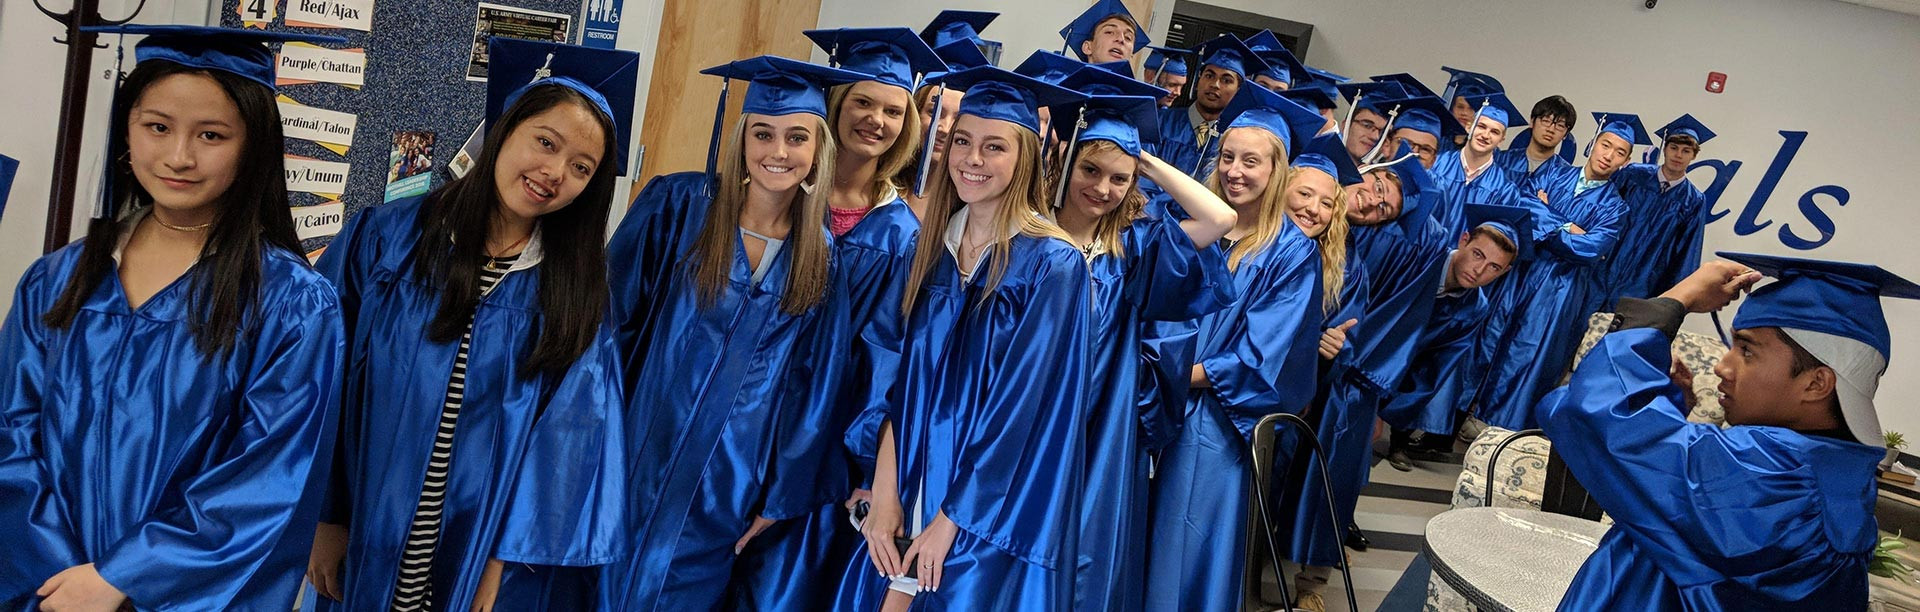 RockfordChristian-students-US-SELECT-2020